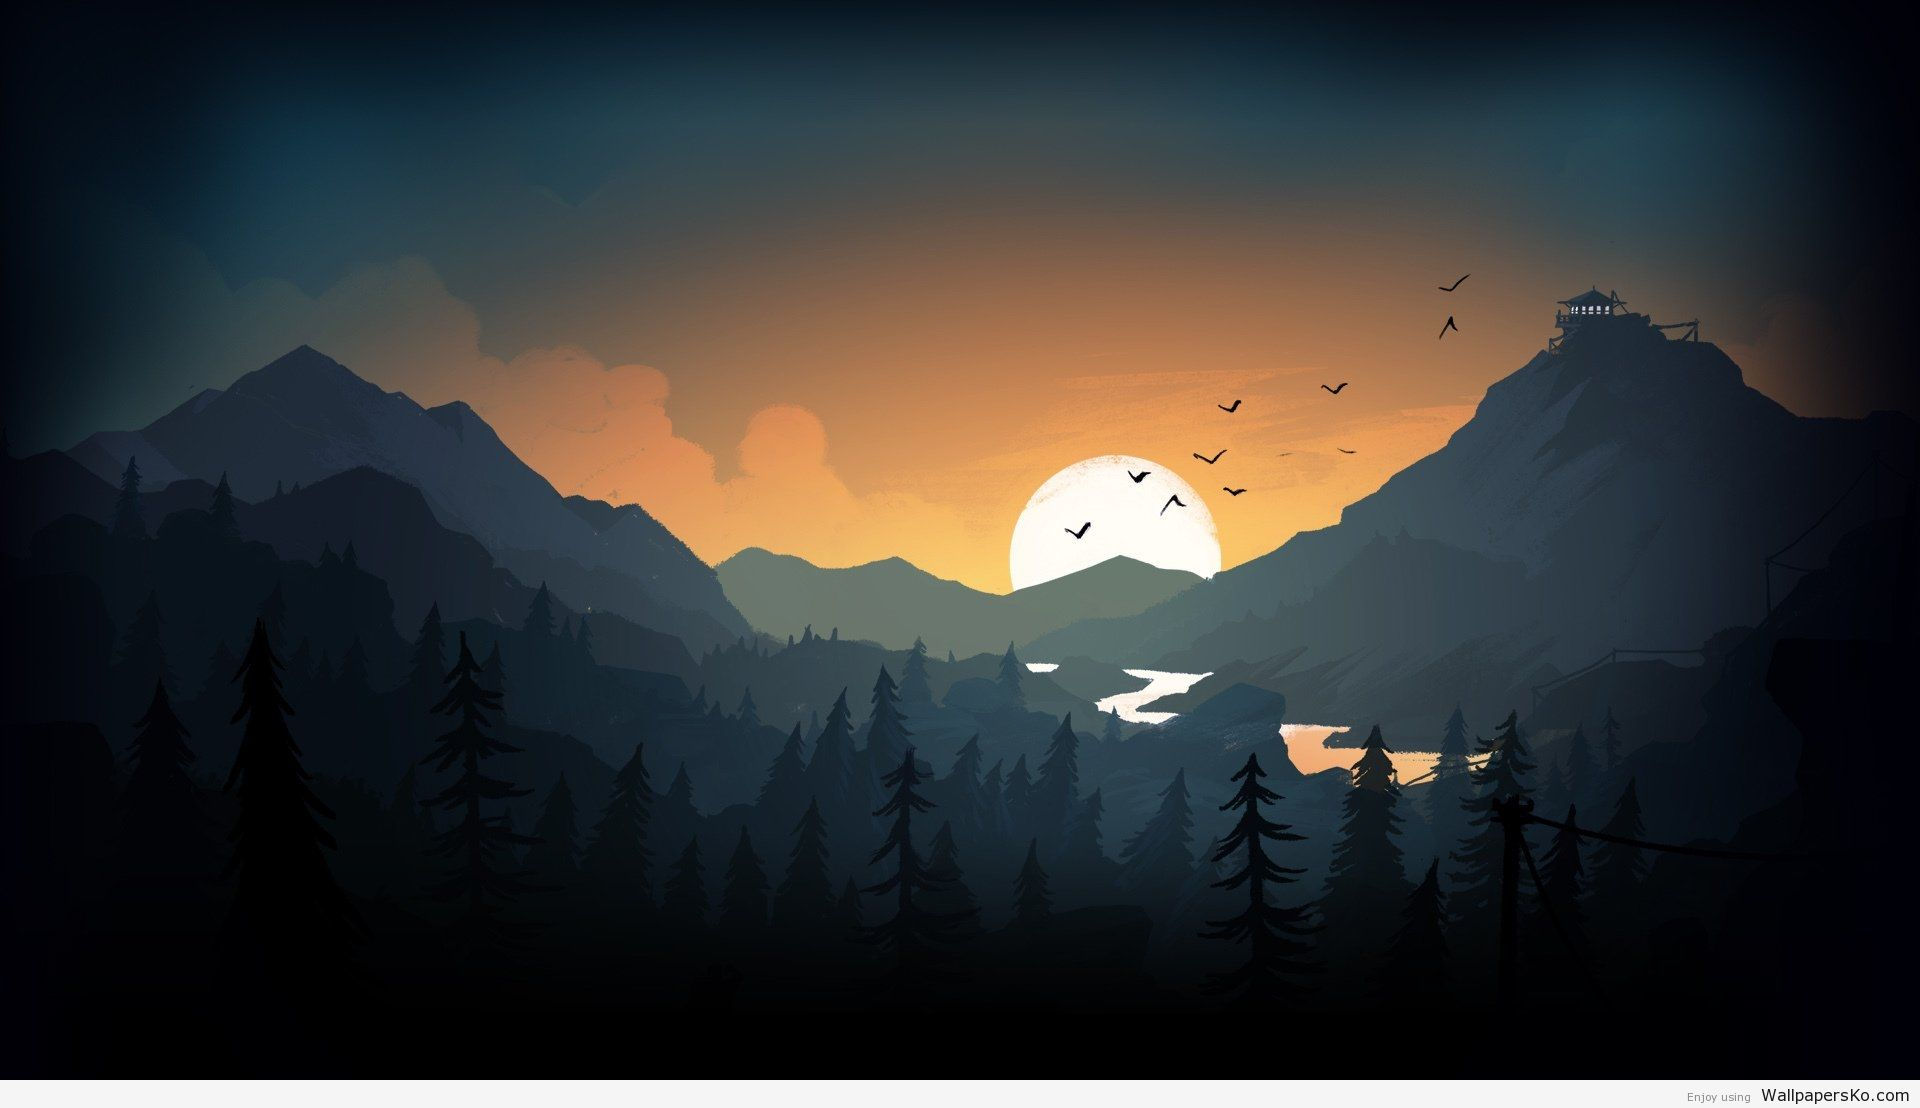 Firewatch Wallpaper Http Wallpapersko Com Firewatch Wallpaper